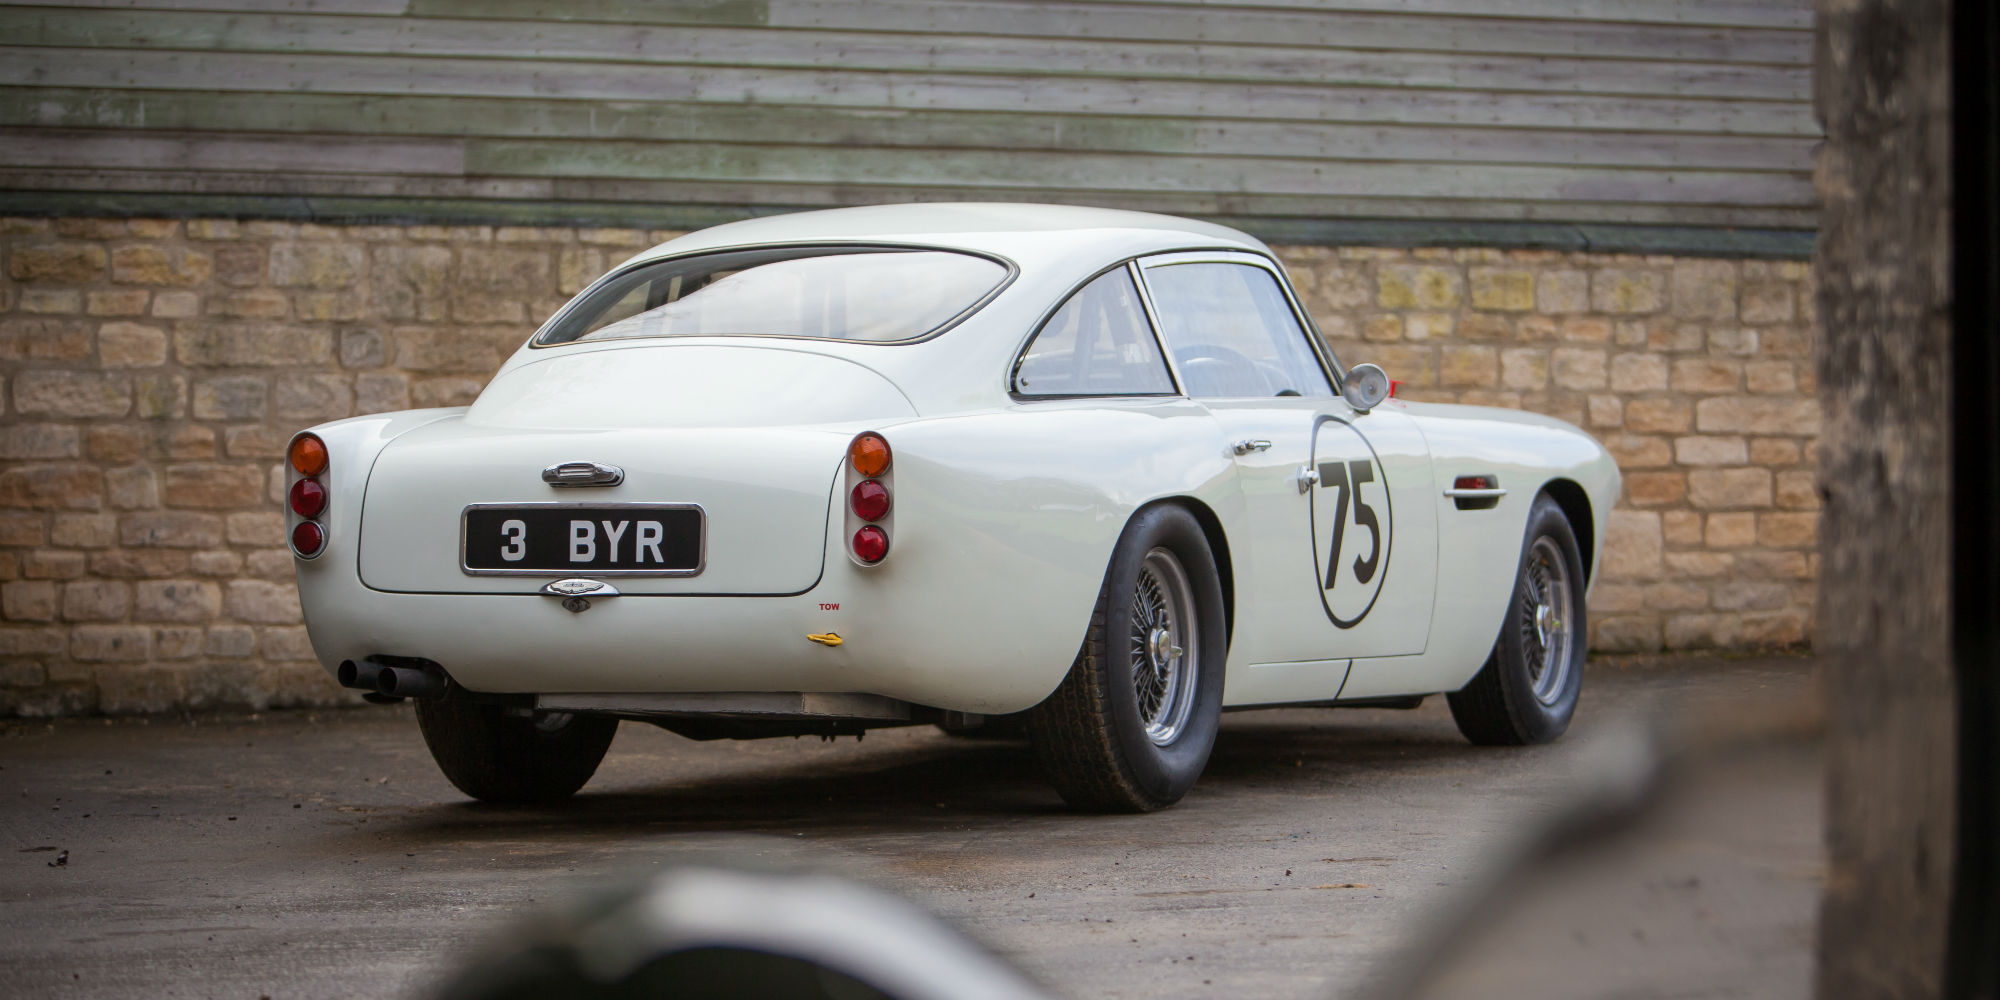 3 BYR, The Ex – Ian Moss 1961 Aston Martin DB4 to FIA Appendix K Specification